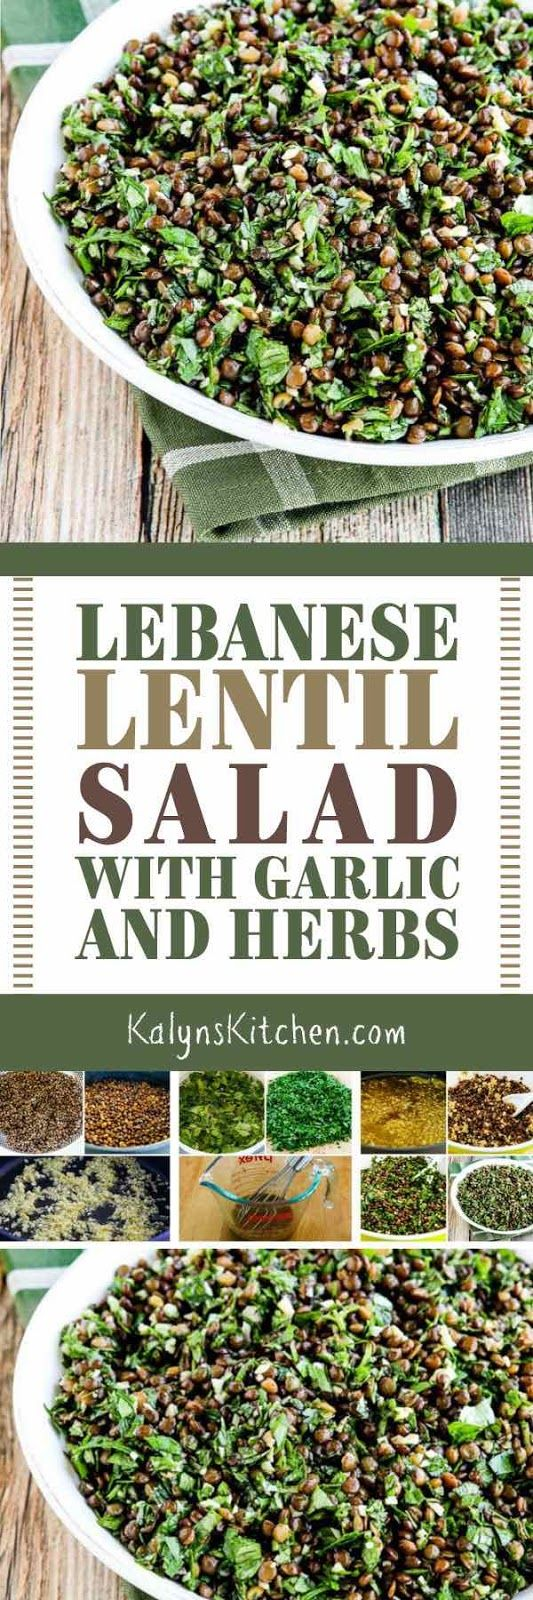 I love lentils which are low-glycemic and high in fiber even though they aren't super low in carbs, and this Lebanese Lentil Salad with Garlic and Herbs is a favorite recipe I've been making for years. The salad is also gluten-free, dairy-free, vegan, and South Beach Diet friendly. [found on KalynsKitchen.com] #LebaneseSalad #LentilSalad #LowGlycemic #Vegan #DairyFree #FreshHerbs